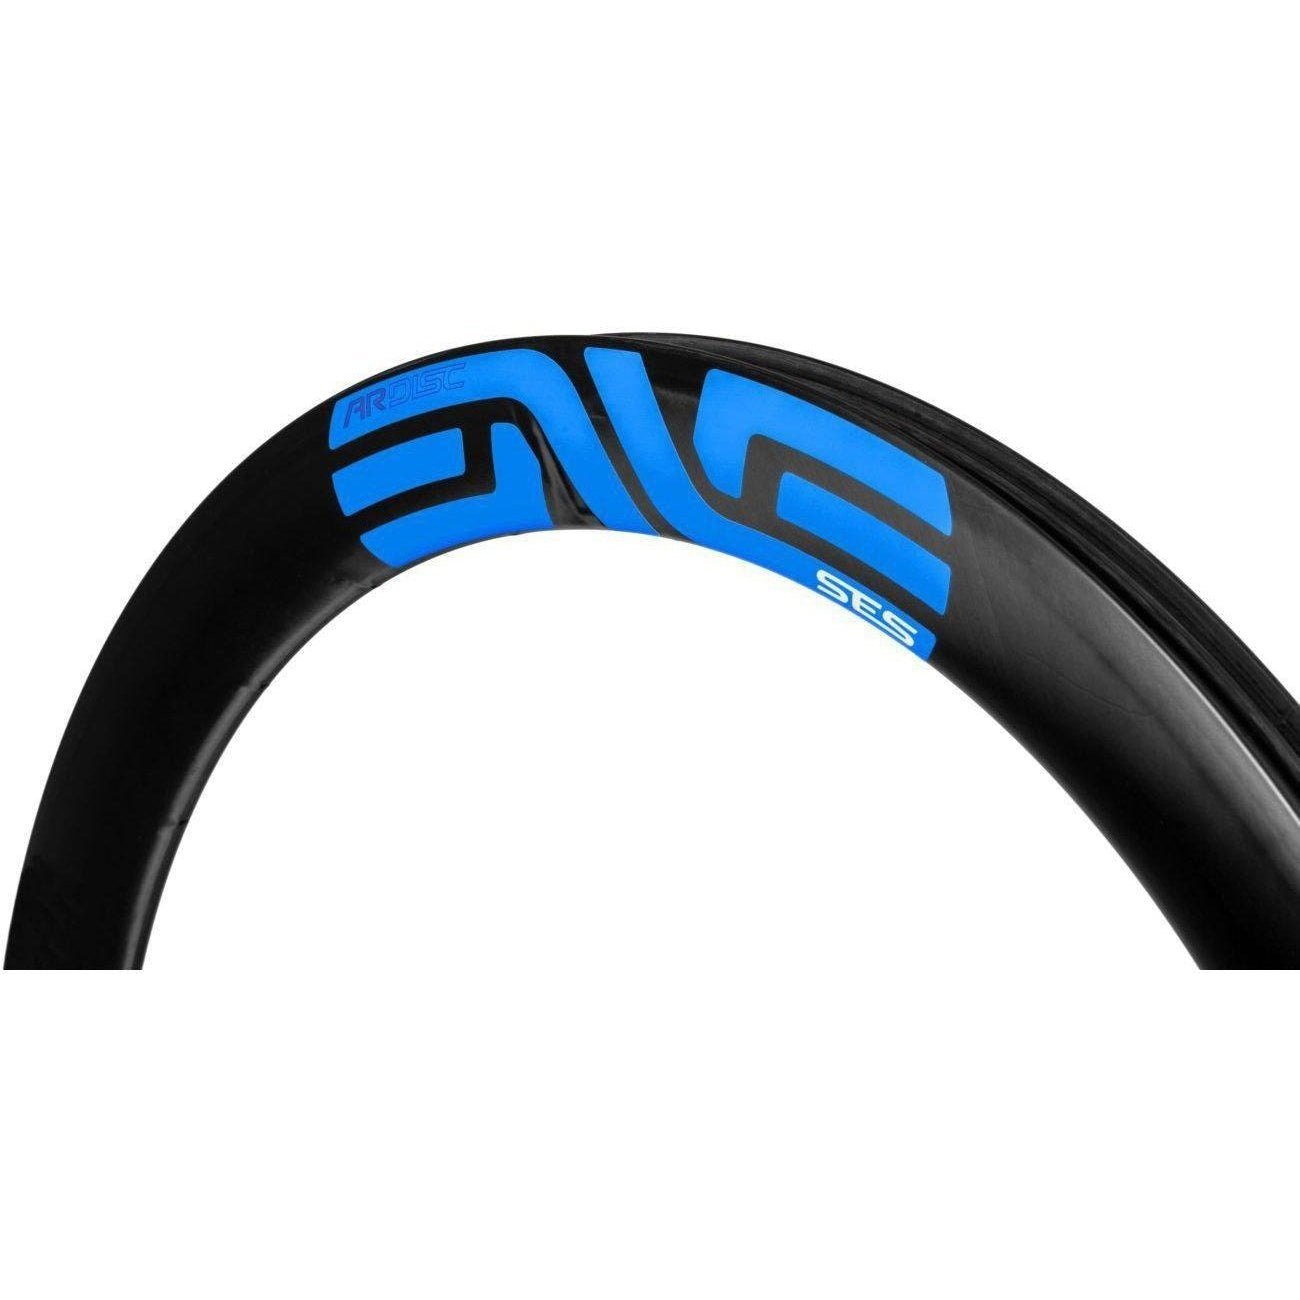 ENVE-ENVE SES 4.5 AR Disc Decals-SES 4.5 AR Disc-Rear 55mm-Process Blue-EN70001000683-saddleback-elite-performance-cycling